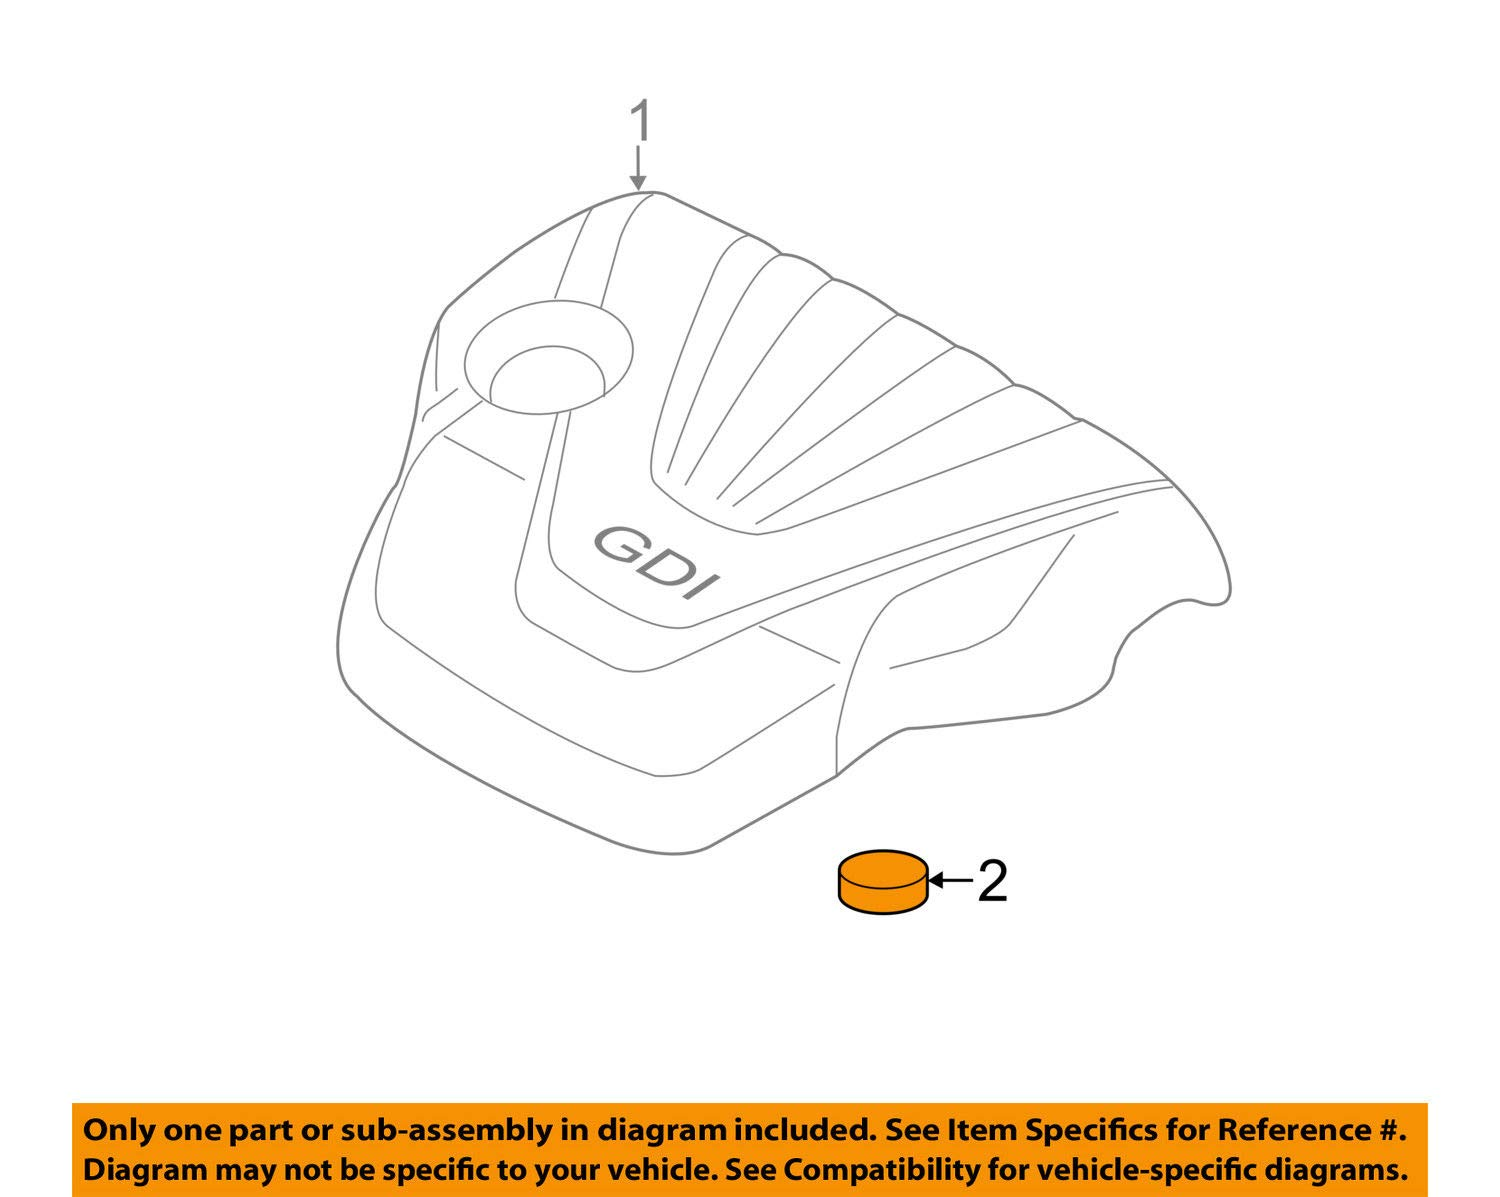 Amazon.com: 2012-2017 Kia Engine Cover Insulator 29244-3F400 ... on 2000 kia sportage motor diagram, kia car diagram, kia rio 1.6 engine, kia wiring diagram, kia rondo engine problems, kia 2.4 engine, kia axle diagram, kia 4 wheel drive problems, kia serpentine belt diagram, 2006 kia rio belt diagram, 2005 kia sedona firing order diagram, kia parts diagram, kia sedona starter diagram, 2000 kia sportage timing marks diagram, kia steering diagram, kia engine specs, toro groundsmaster 120 wire diagram, 2005 kia sedona exhaust system diagram, kia 3.5 engine problems,